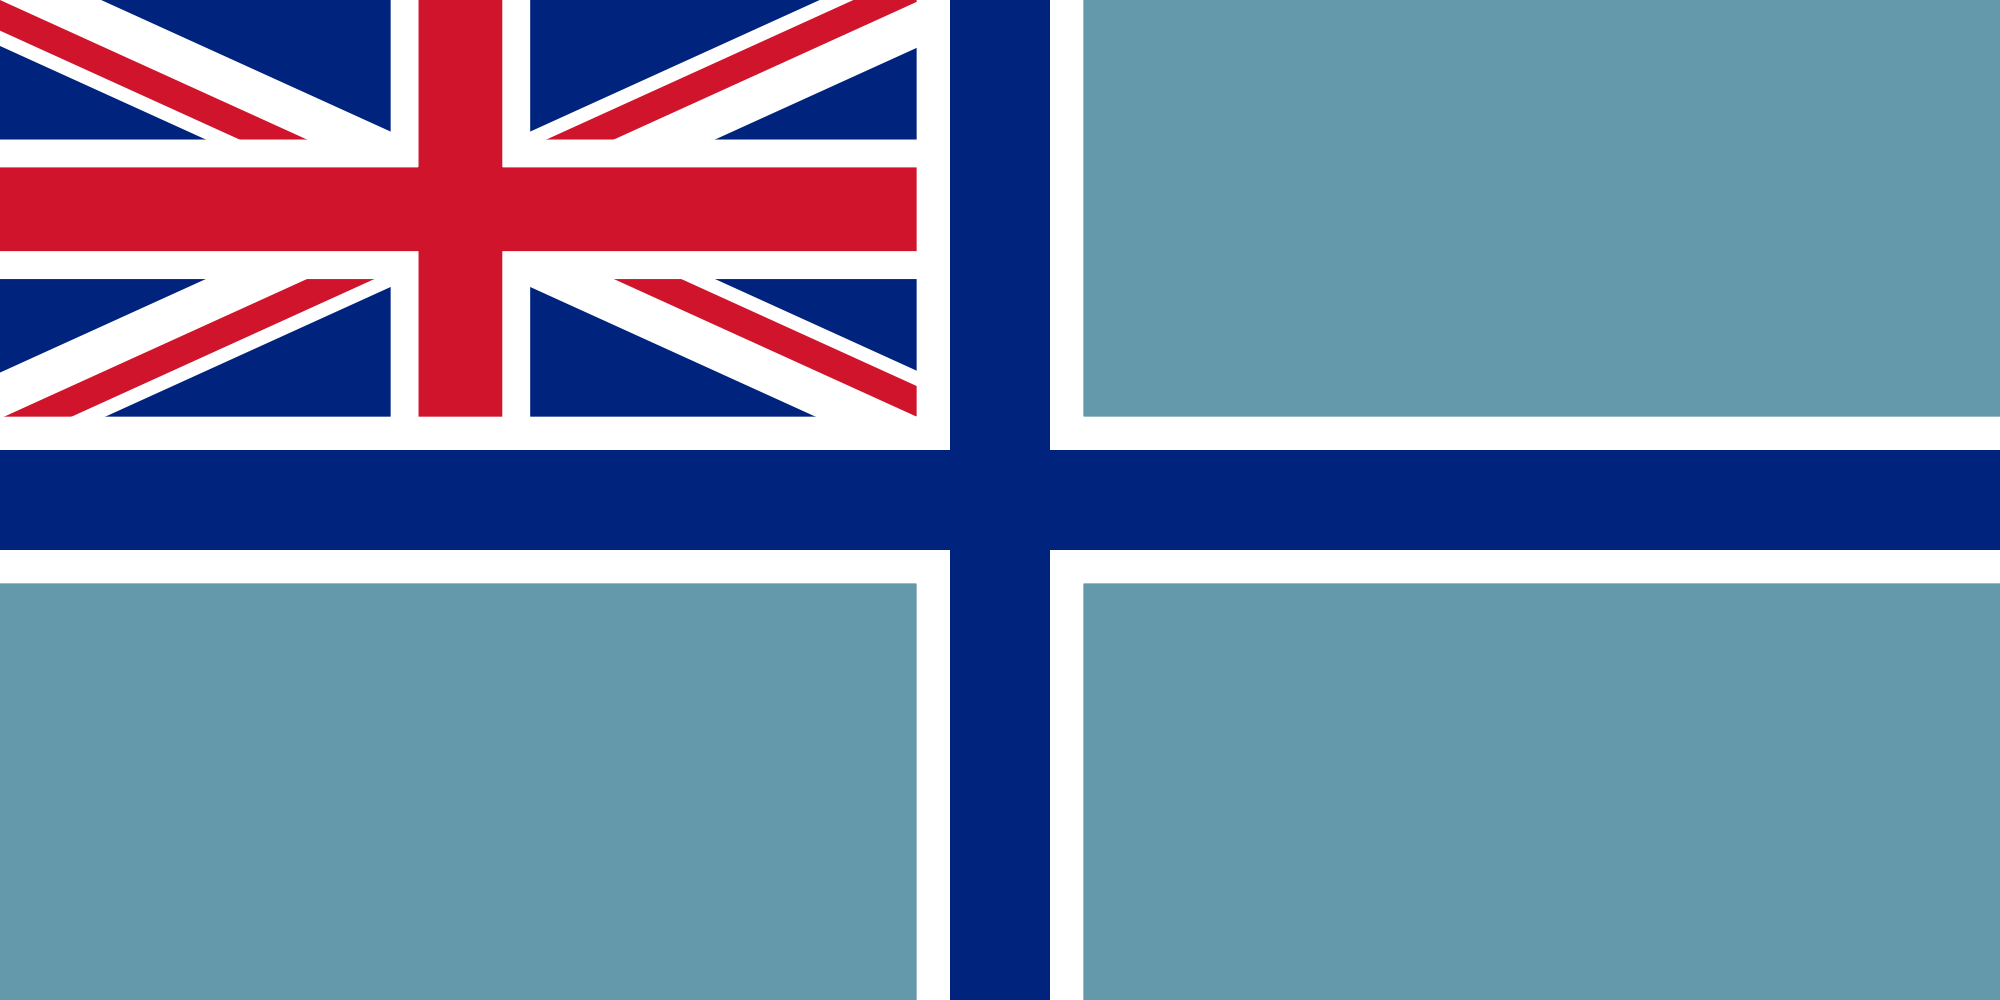 United Kingdom svg #3, Download drawings